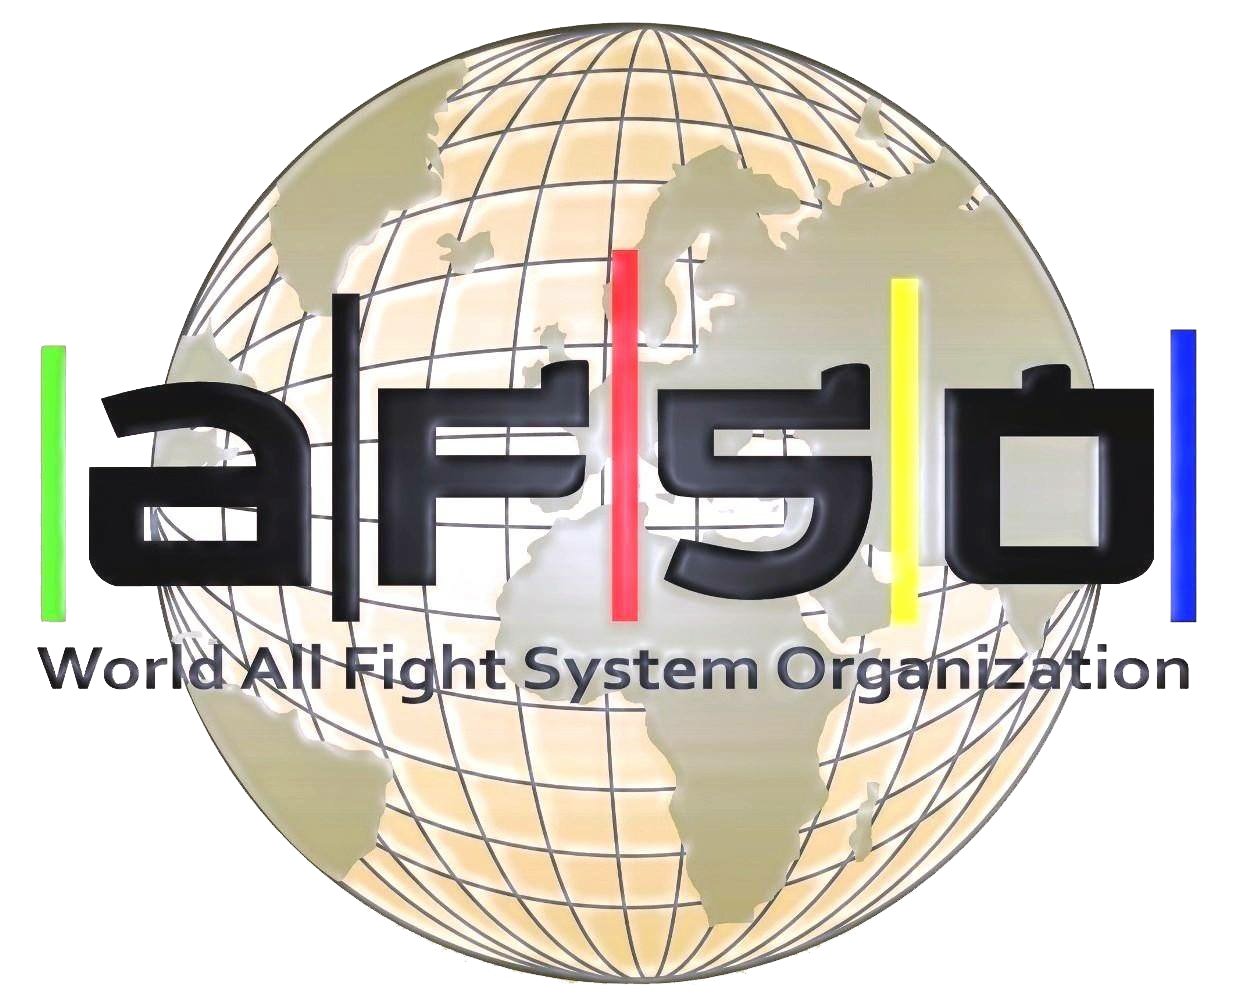 World All Fight System Organization Logo